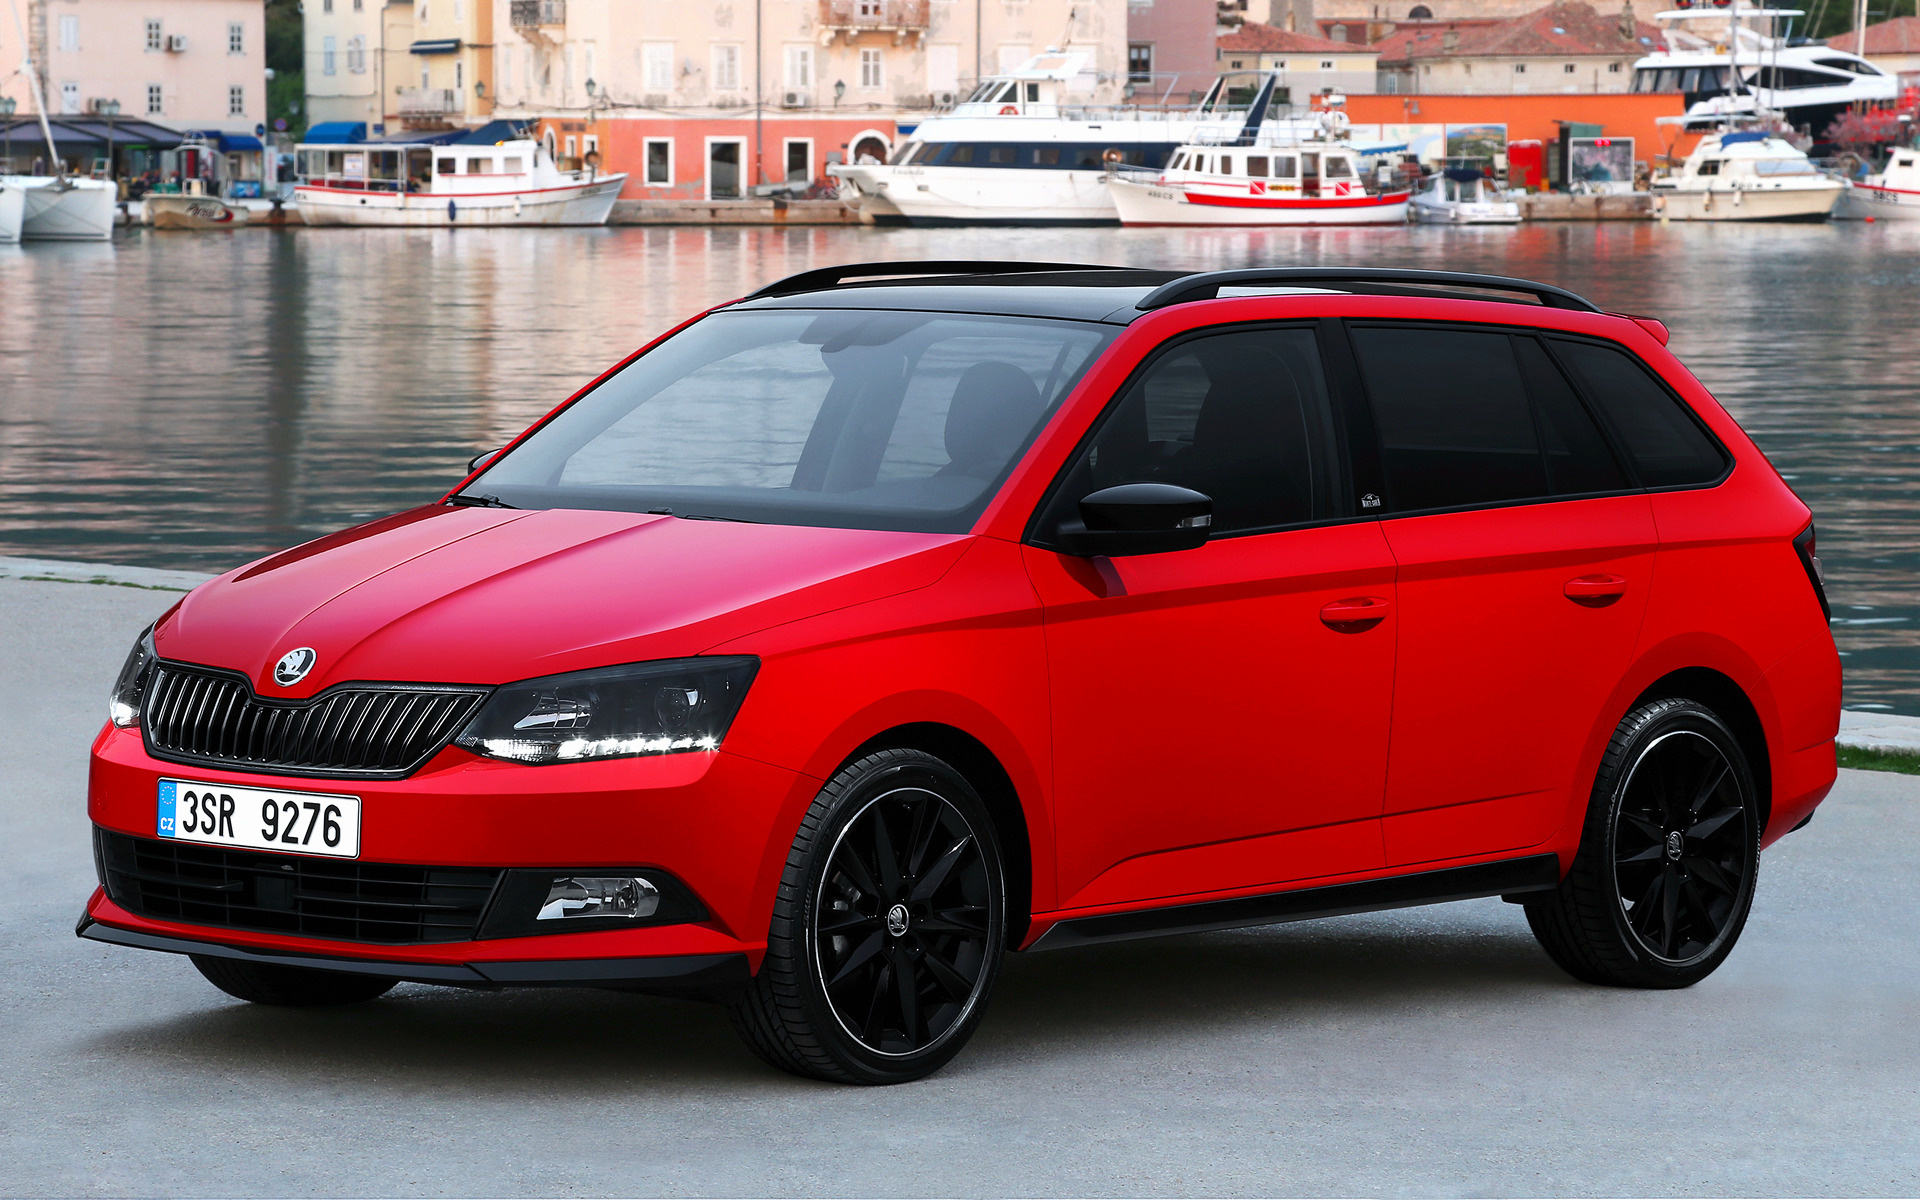 Skoda Fabia Combi Monte Carlo 2015 Wallpapers And Hd